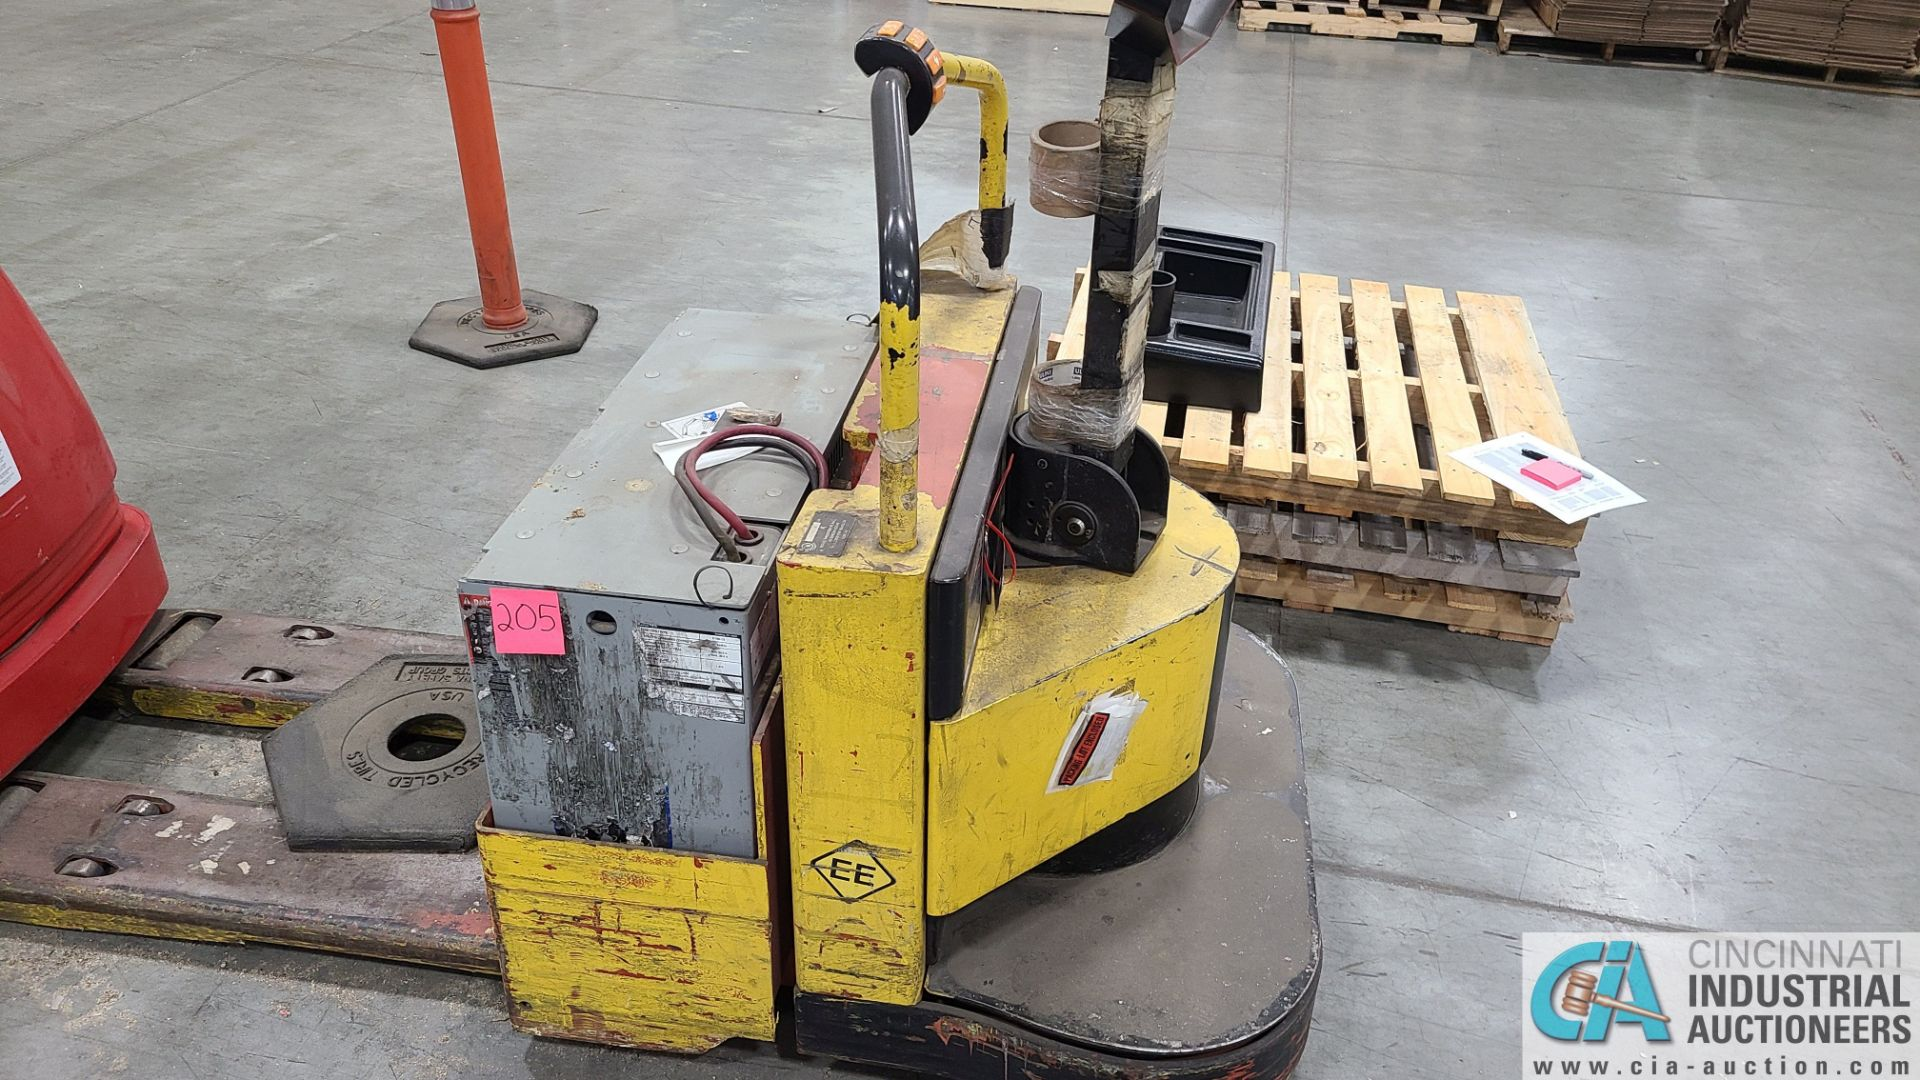 PRIME MODEL HMX65 ELECTRIC PALLET TRUCK; S/N HMX6536194001, W/ BATTERY, 4917 HOURS (2570 ORCHARD - Image 2 of 4